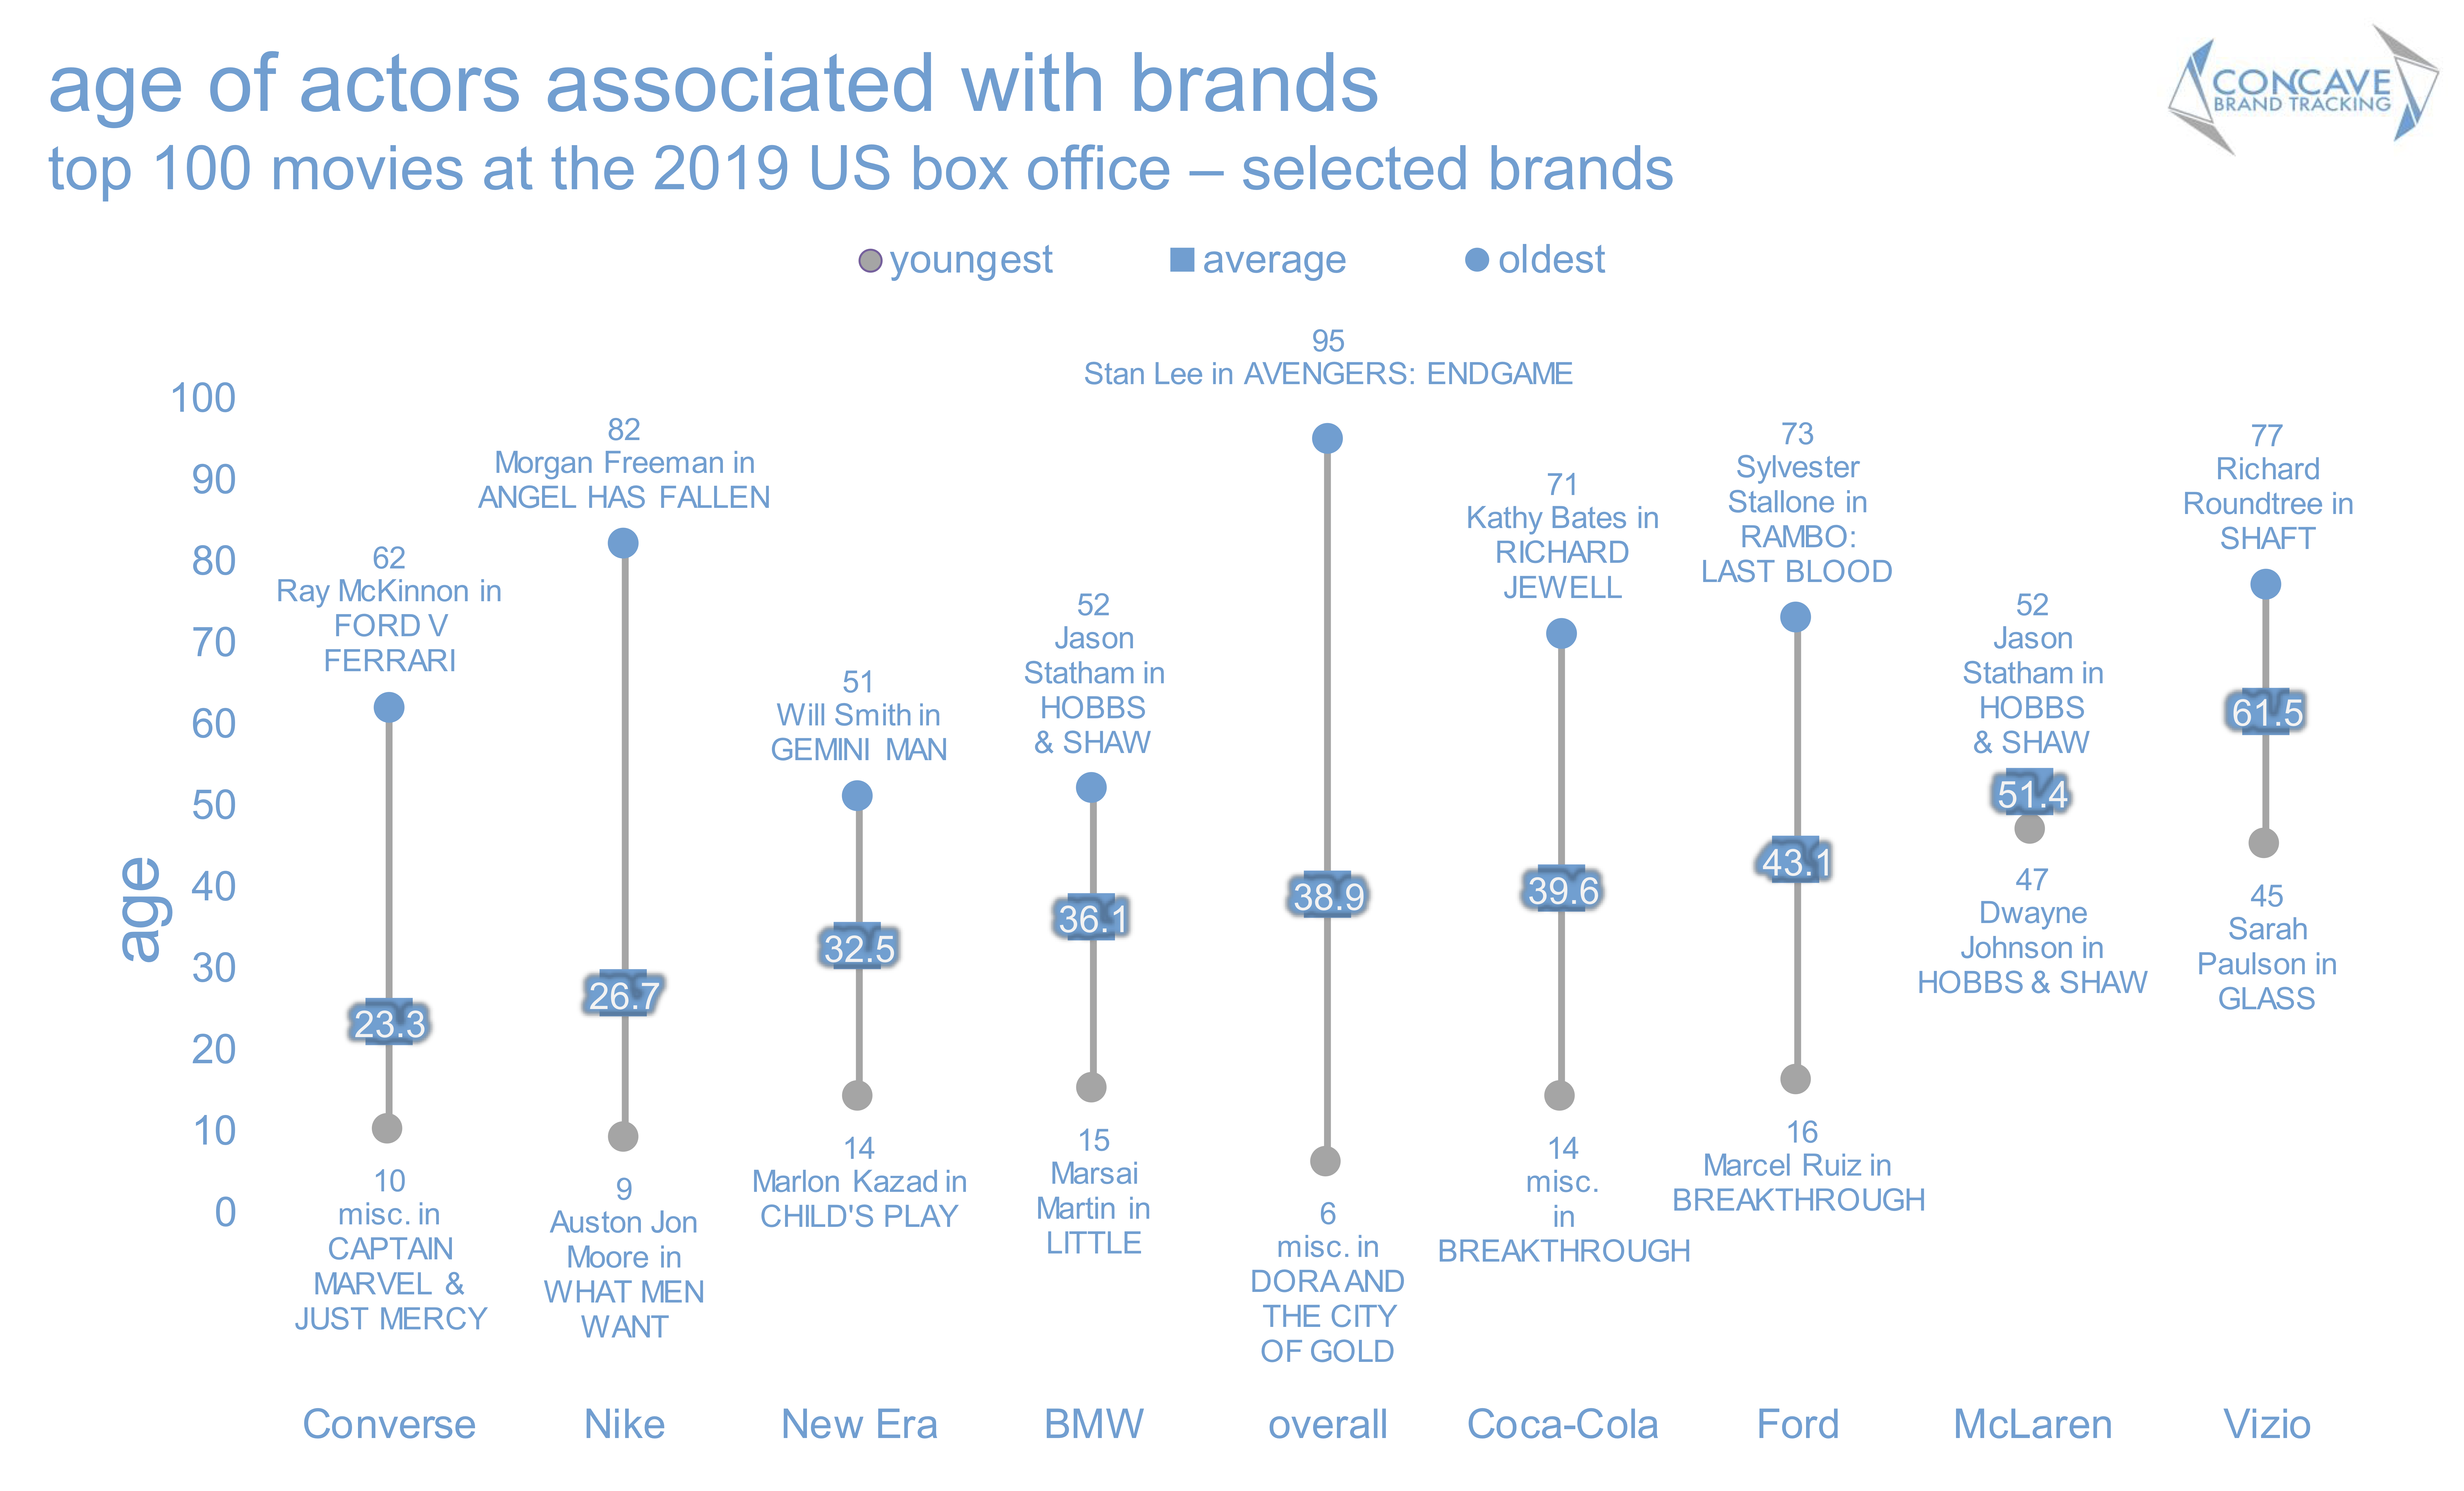 Concave brand tracking, product placement, brands, movies, entertainment marketing, branded integration, brand integration, integration marketing, analysis, valuation, metrics, measurement, concave, Ford, demographcis, age